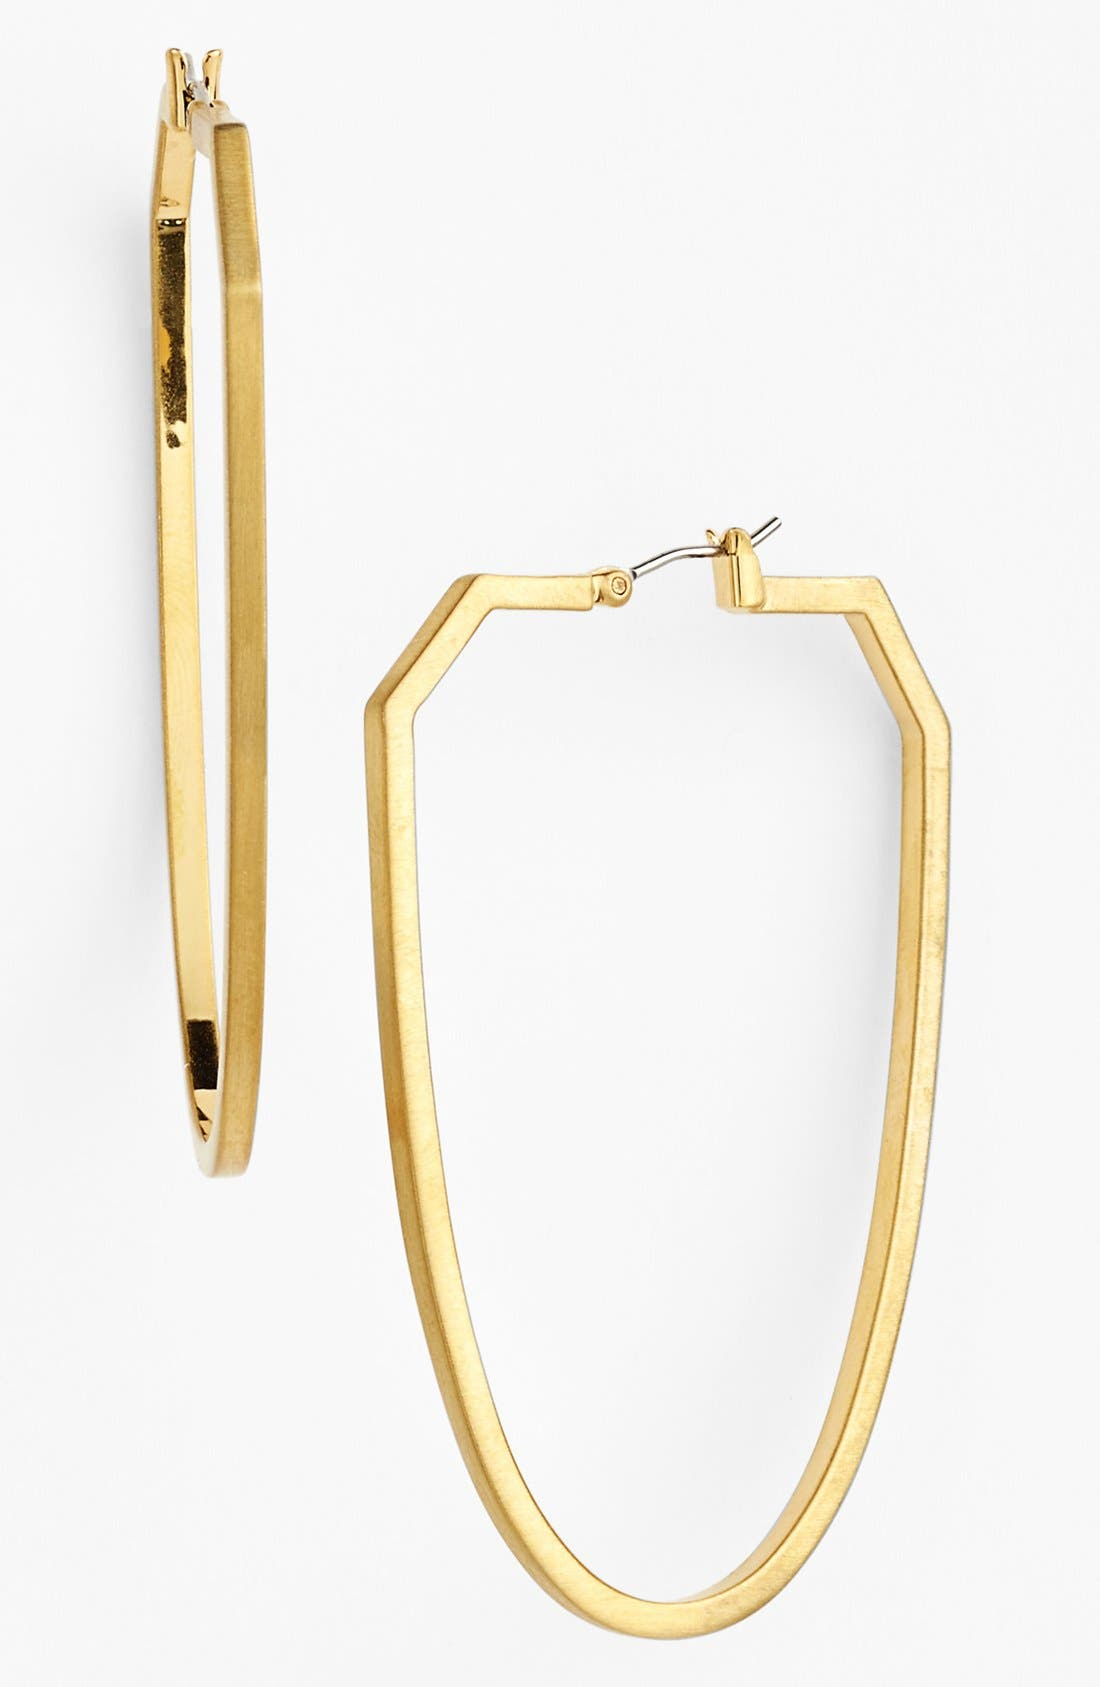 Main Image - Vince Camuto 'Ethereal Statement' Oblong Hoop Earrings